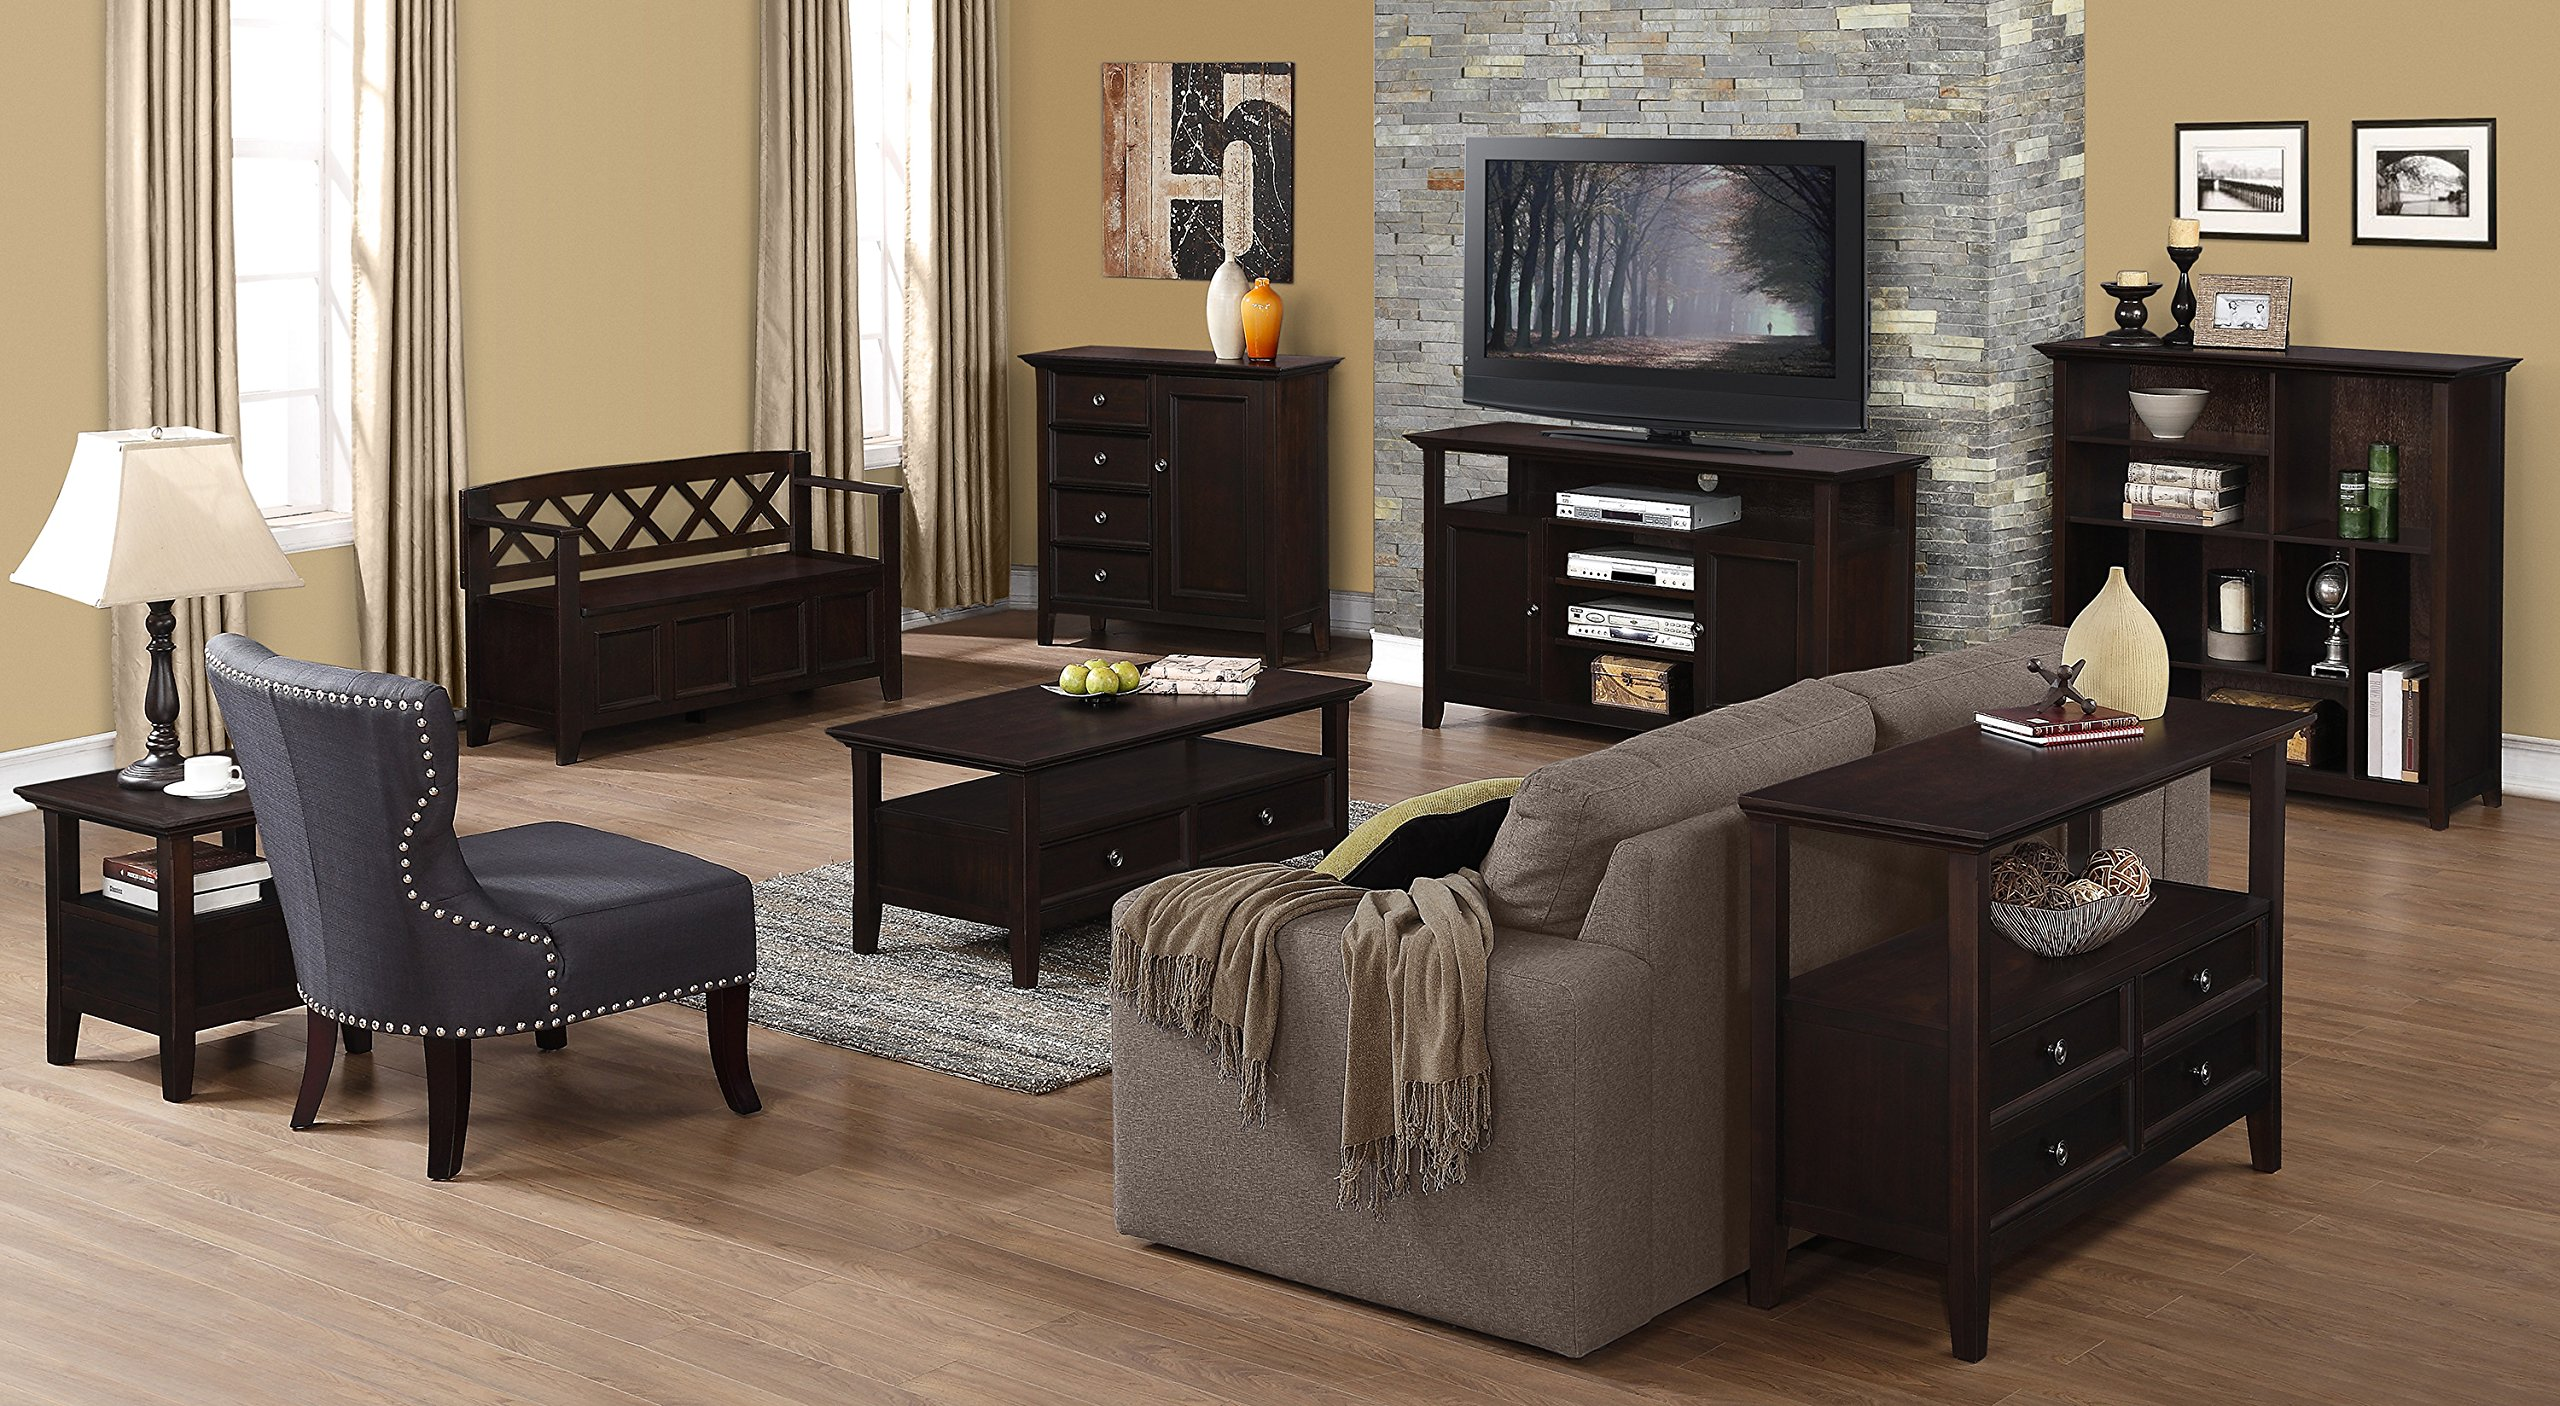 Simpli Home Amherst Solid Wood Entryway Storage Bench, Light Avalon Solid Wood Brown by Simpli Home (Image #9)